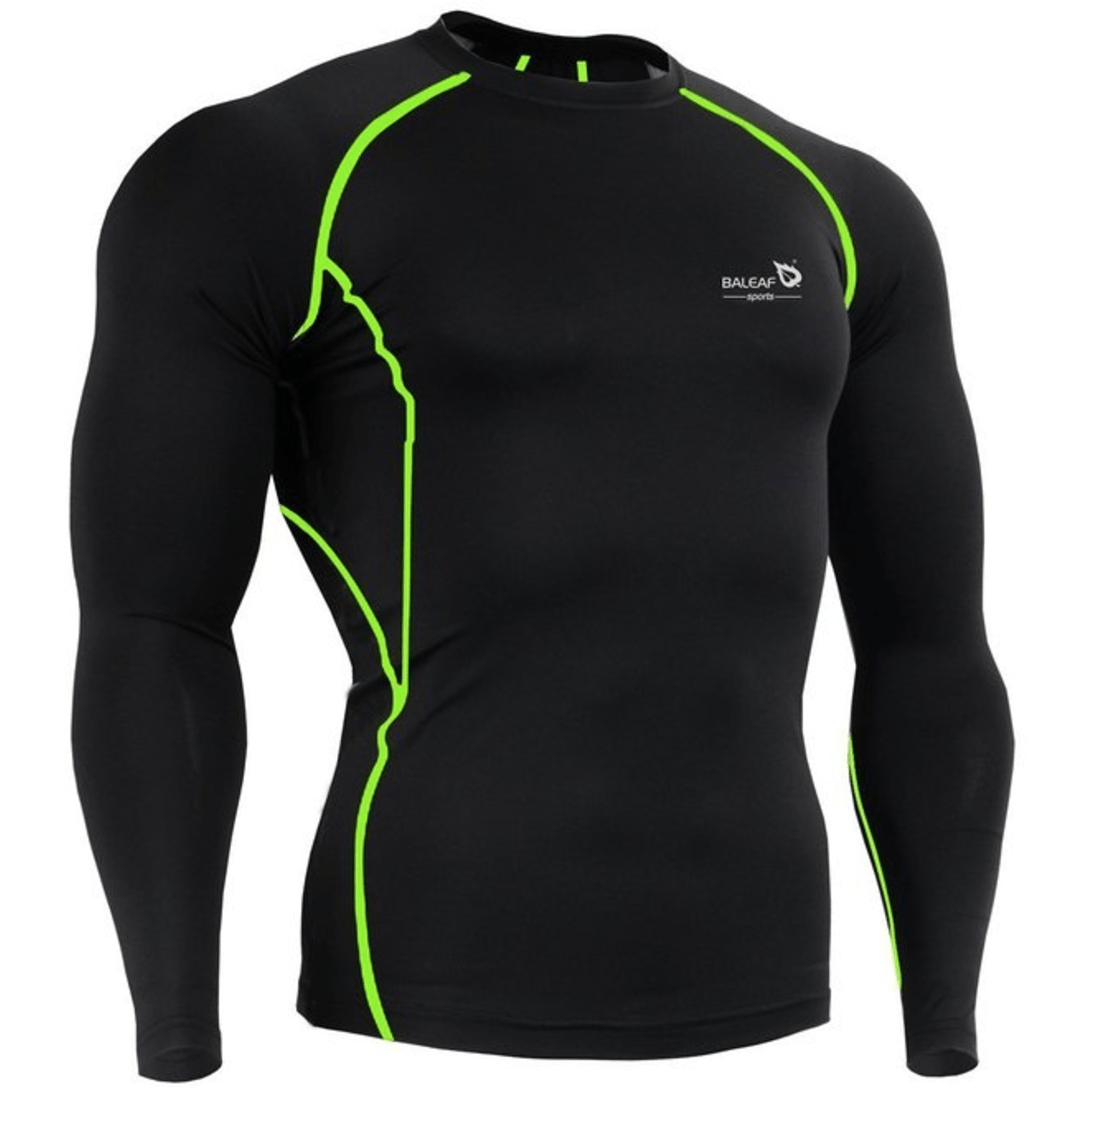 Our Best Crossfit Clothing Picks